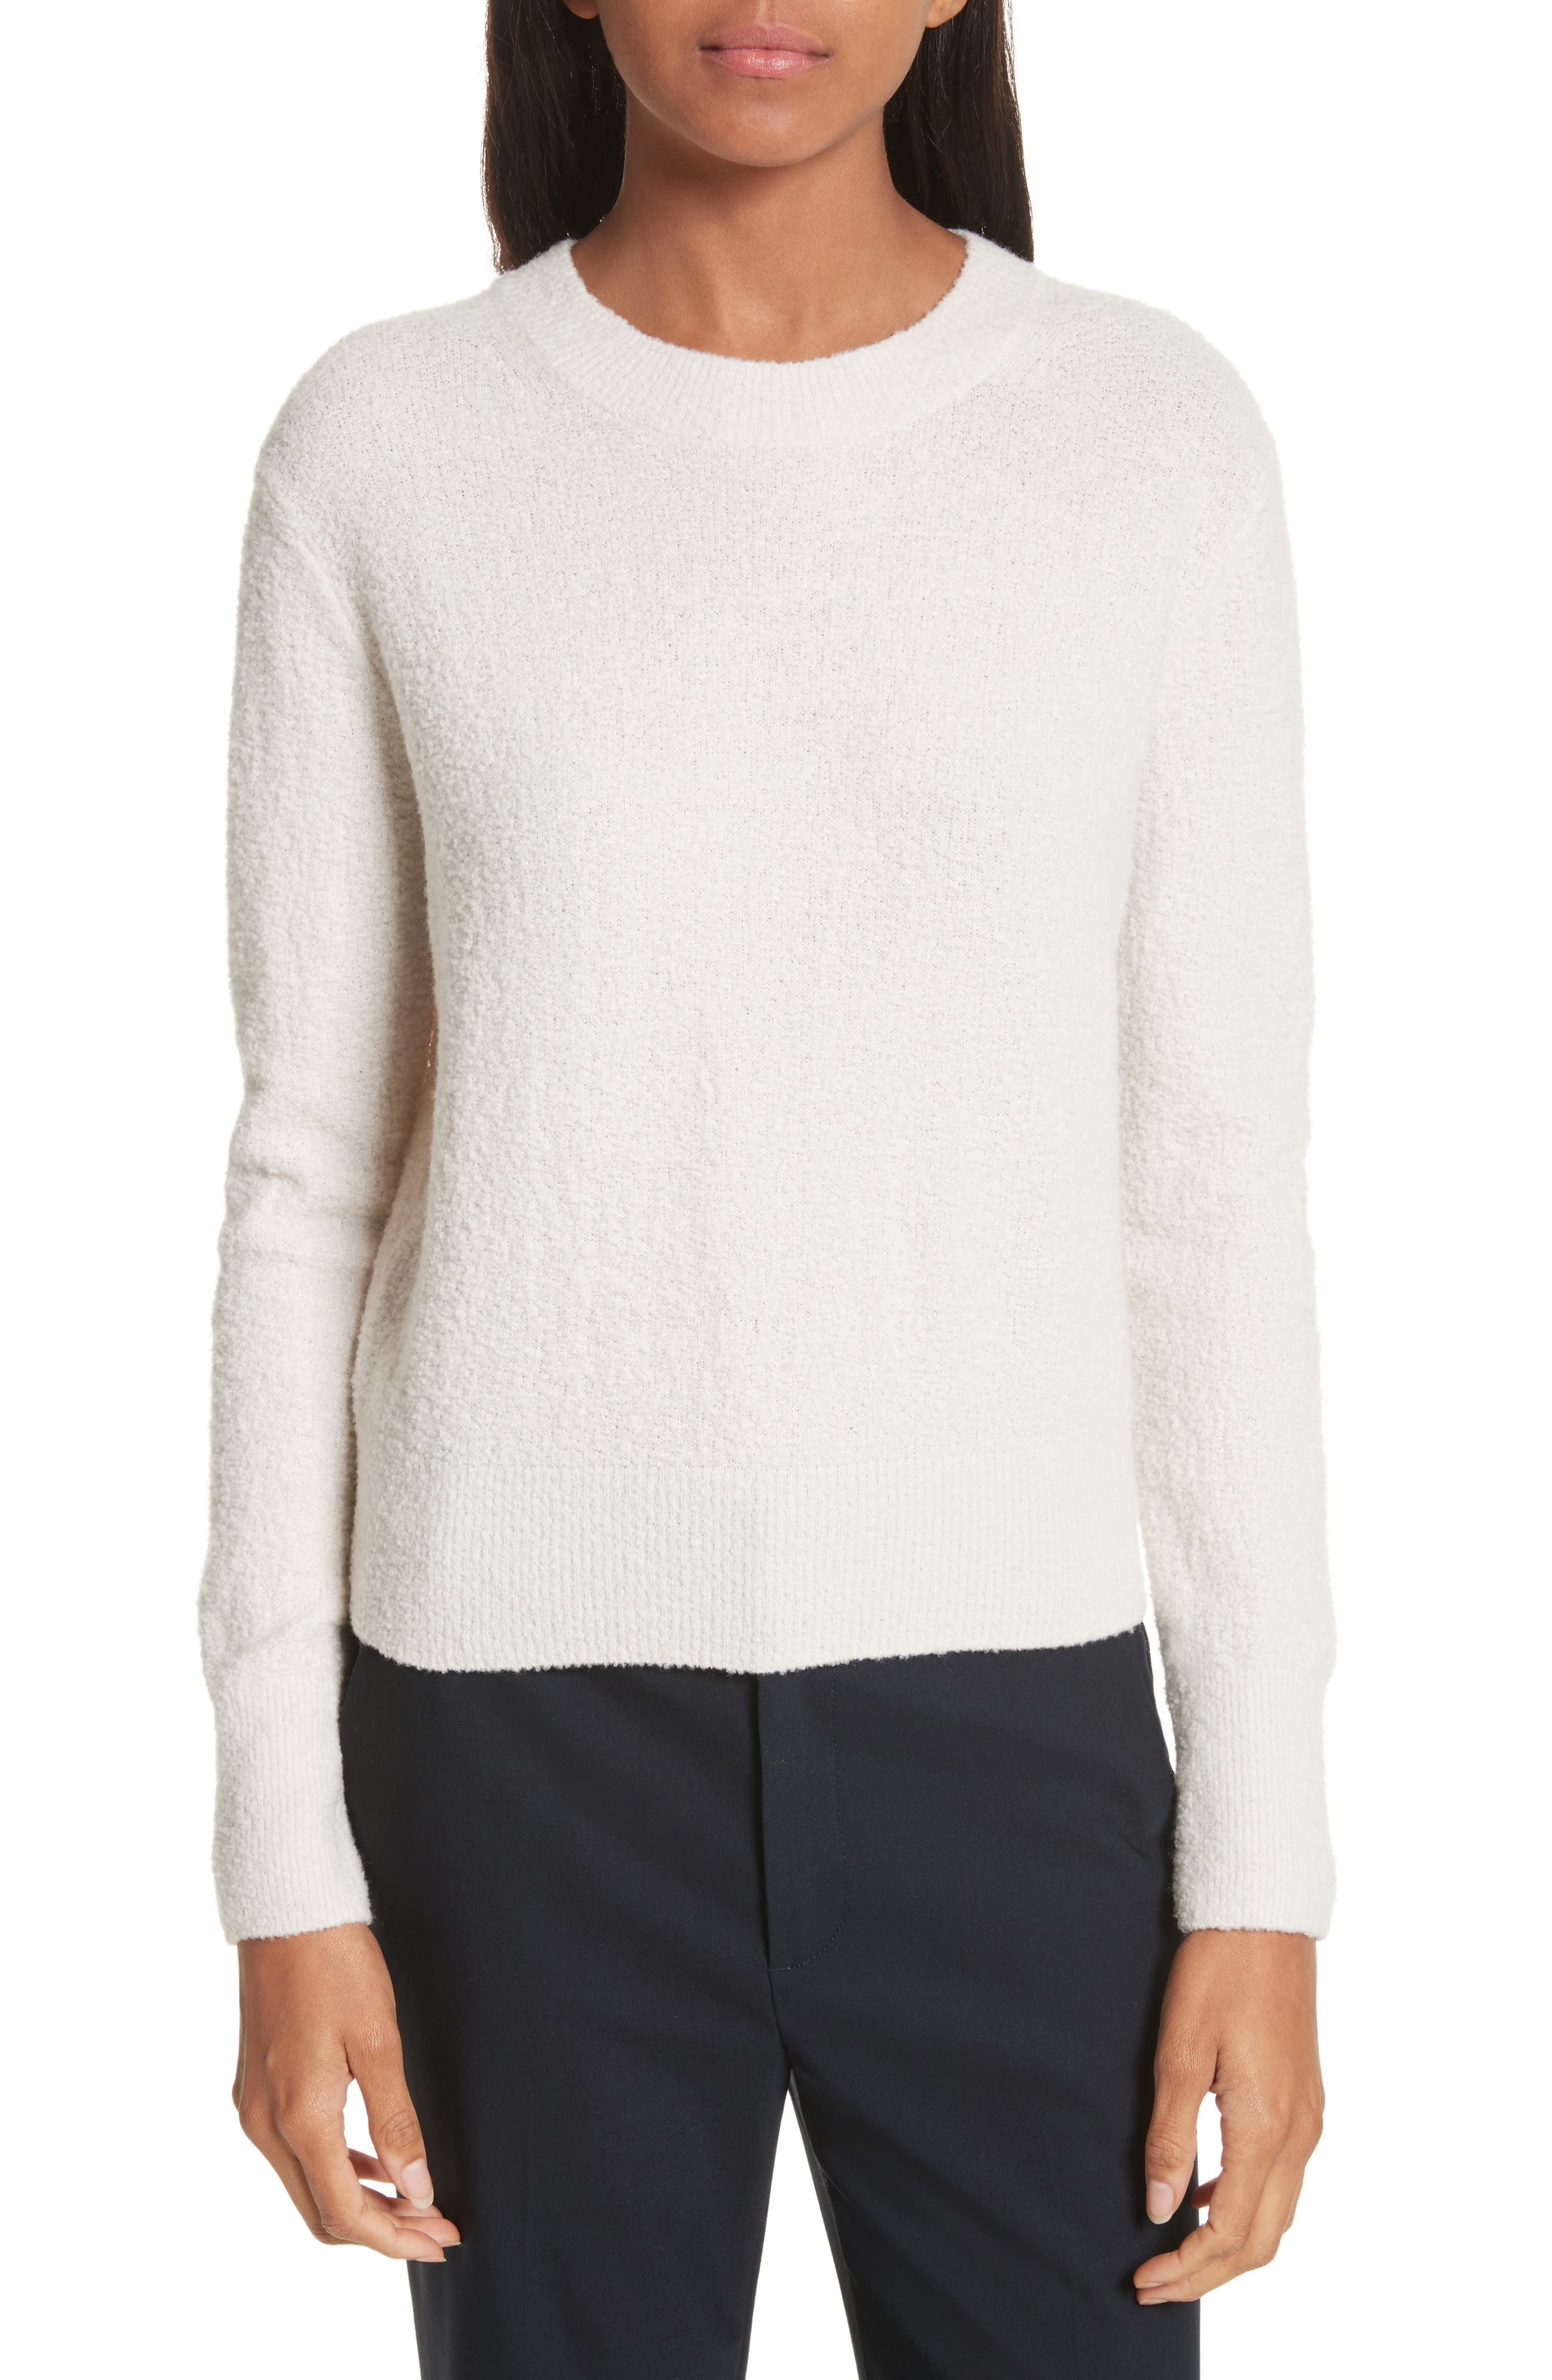 Crewneck Wool Blend Sweater,                             Main thumbnail 1, color,                             Off White